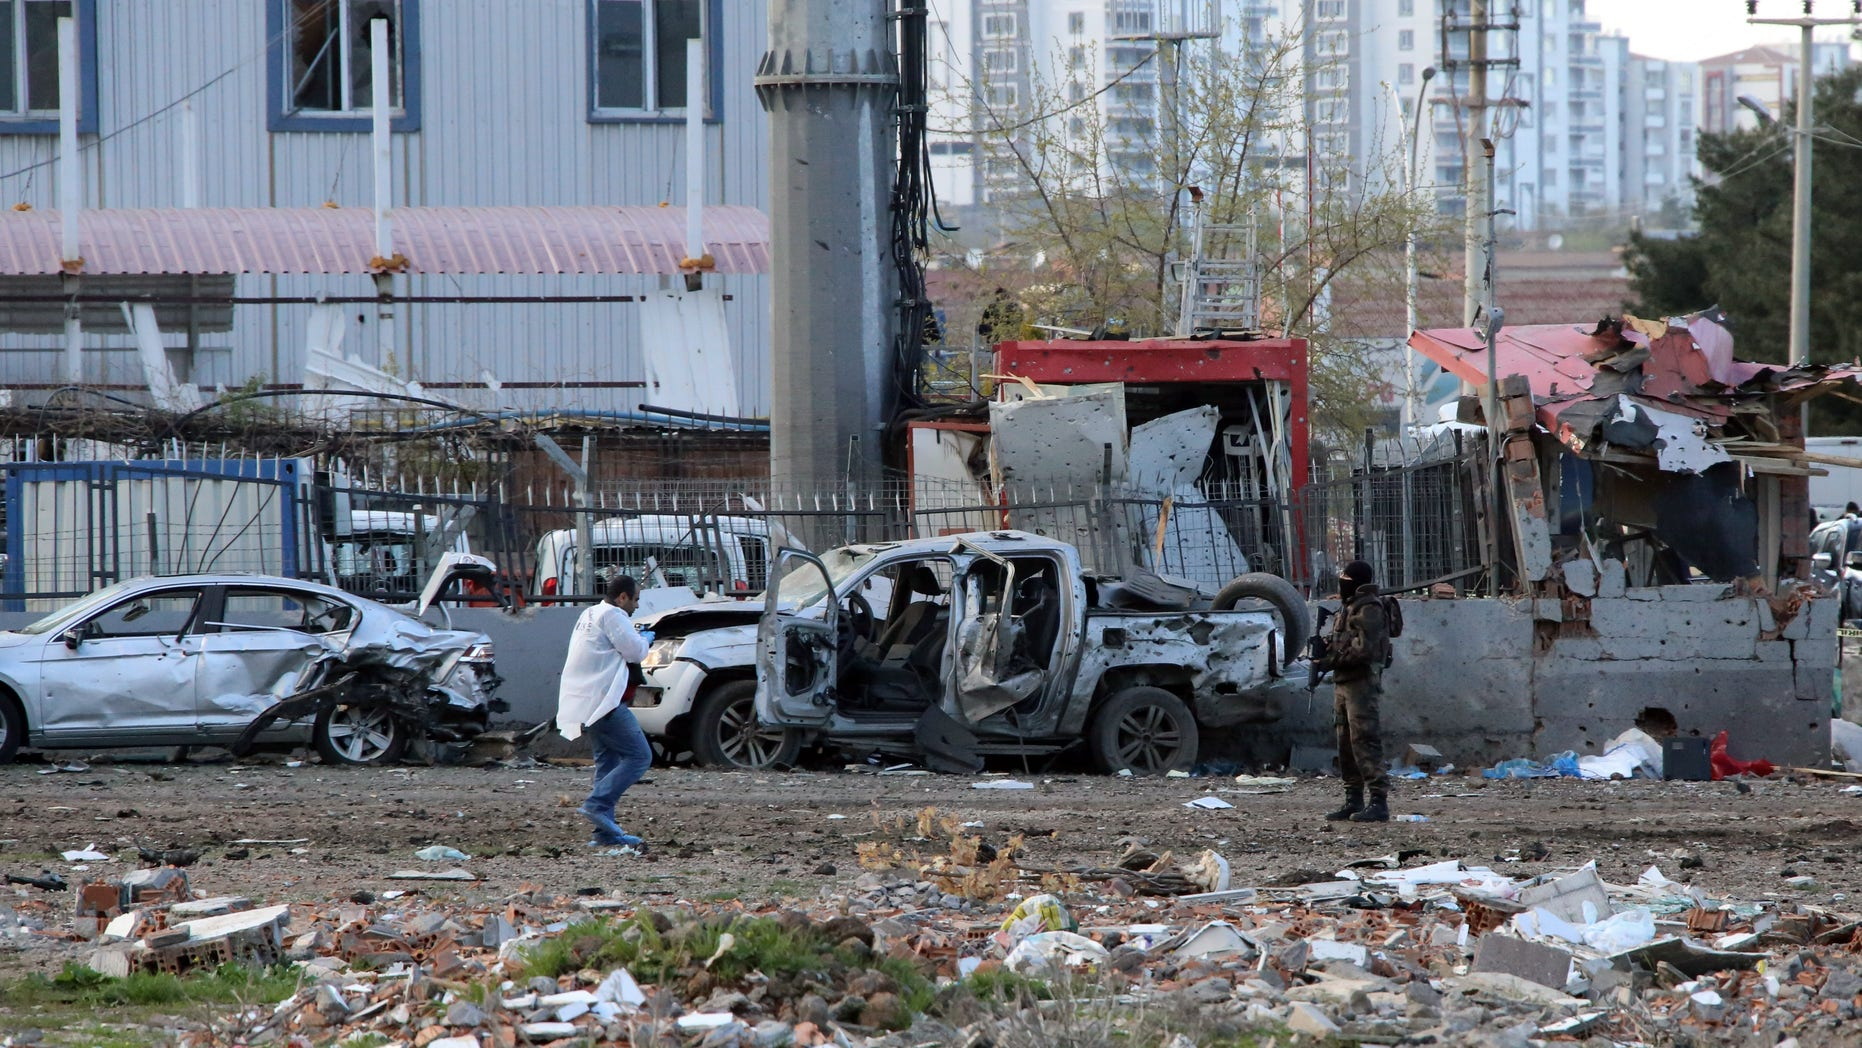 Security and forensic officials work at the site after an explosion caused by a bomb-laden car targeting police in the mainly Kurdish city of Diyarbakir, Turkey, Thursday, March 31, 2016, Turkish news agencies reported.  The explosives detonated as a vehicle carrying special forces and riot police passed by, causing many deaths and injuries. (AP Photo/Mahmut Bozarslan)